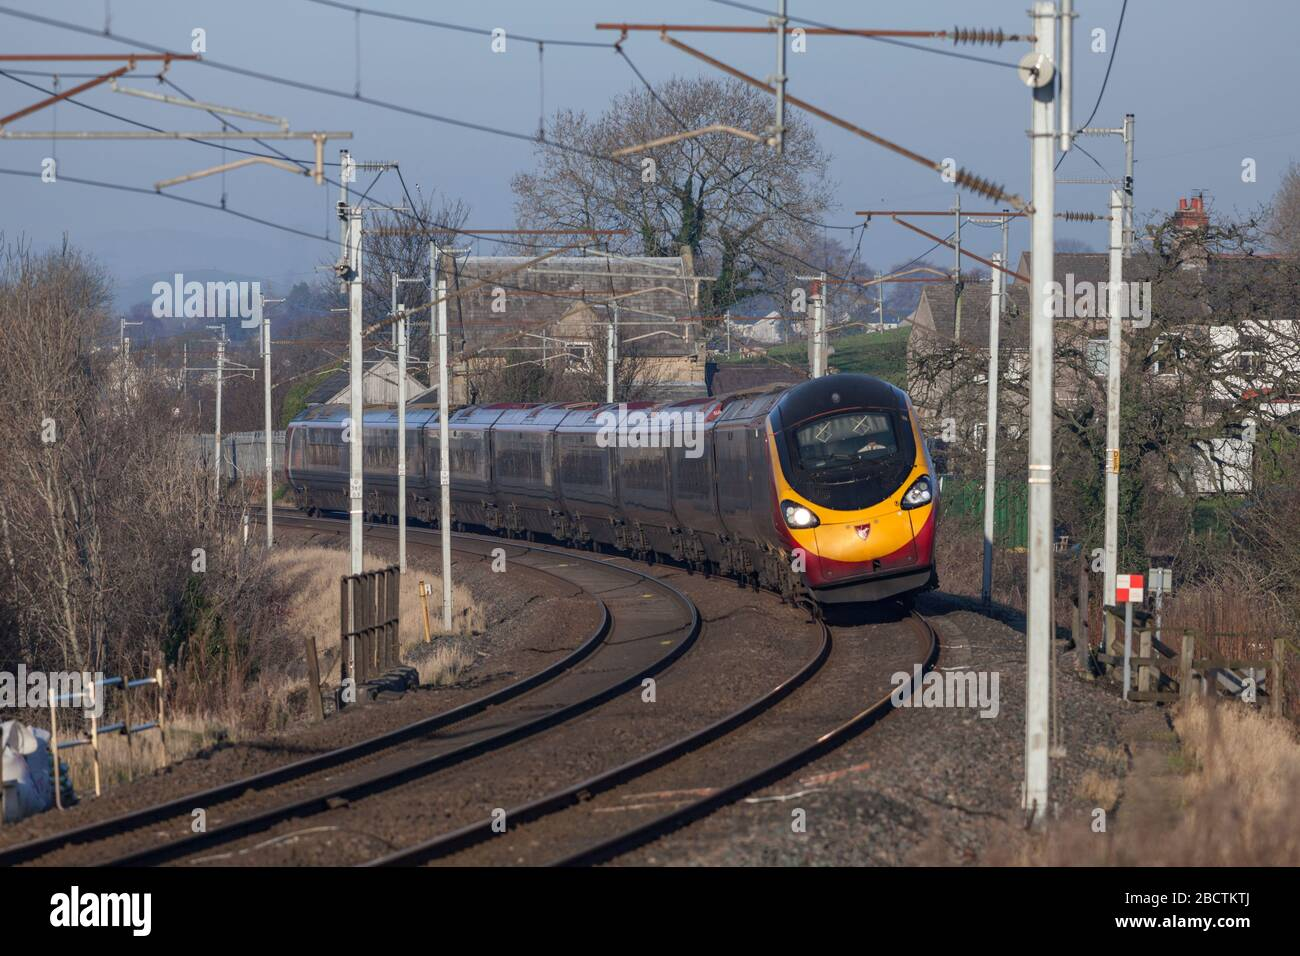 Virgin trains Alstom class 390 Pendolino tilting train tilting around a curve on the west coast mainline in Cumbria Stock Photo